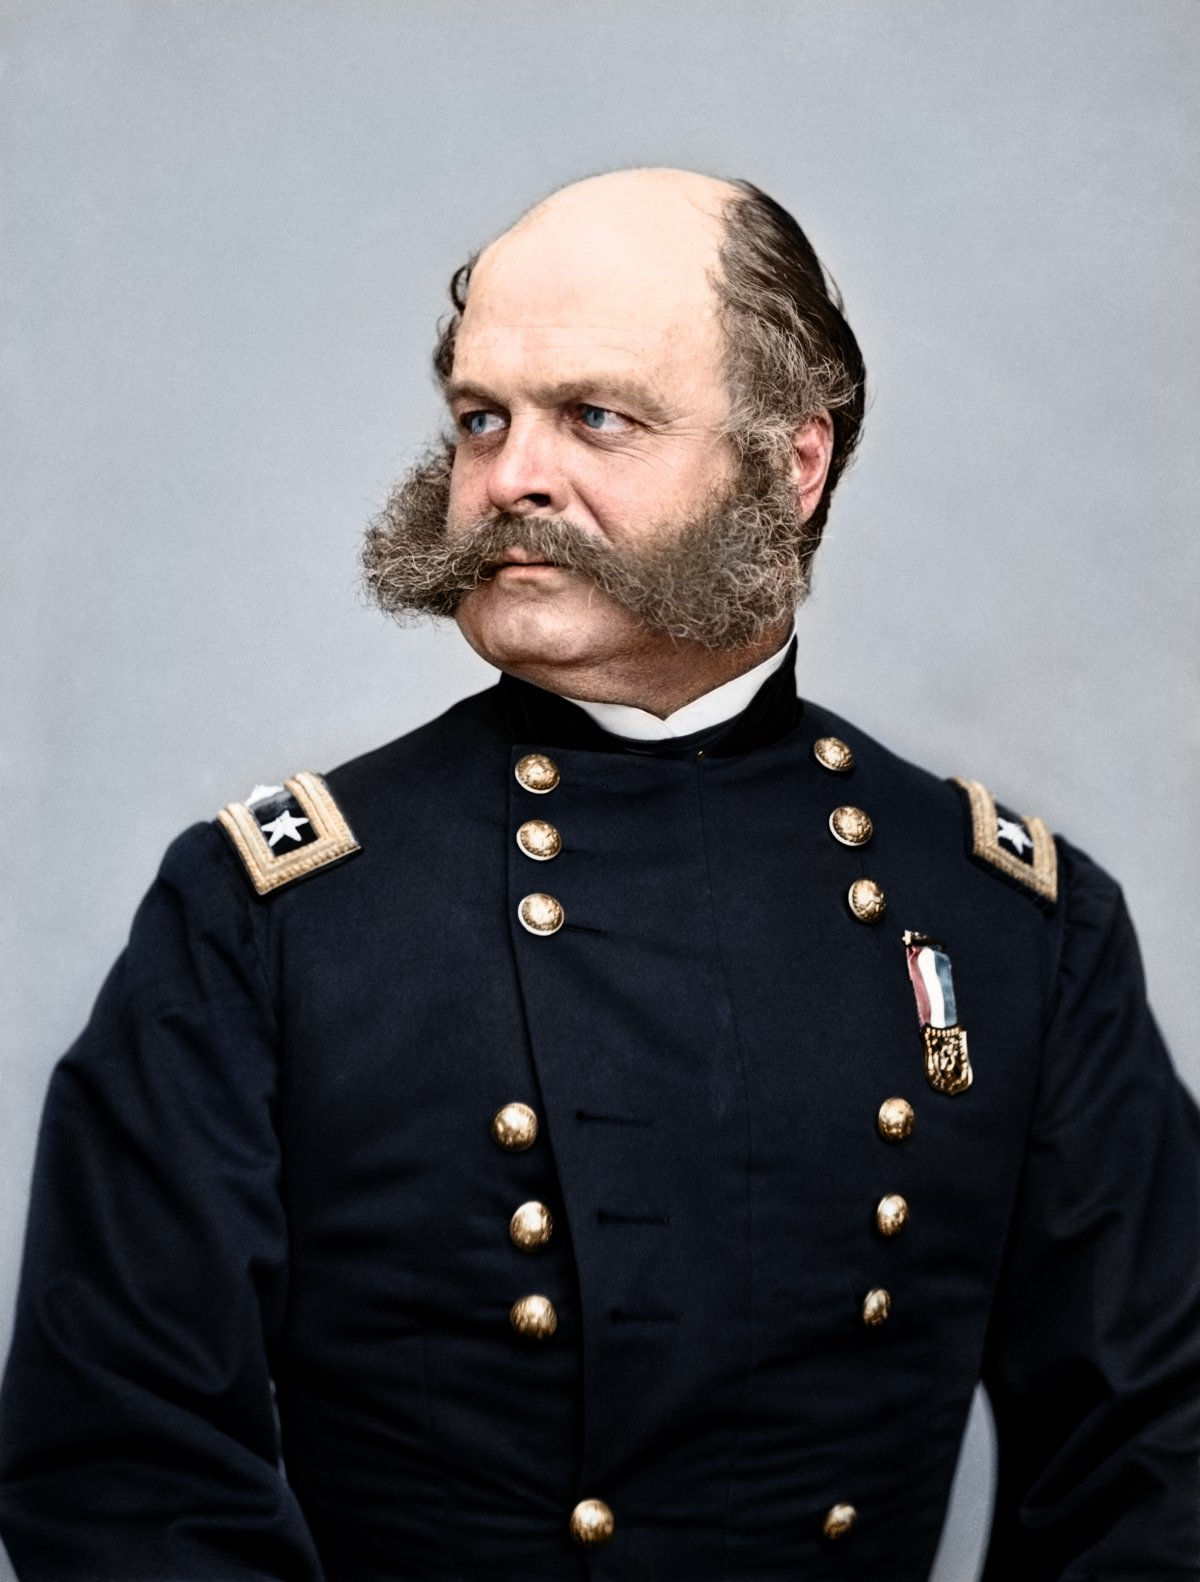 22_Major General Ambrose Burnside, the commander of the Union army of the Potomac_Fredericksburgi vereség.jpg